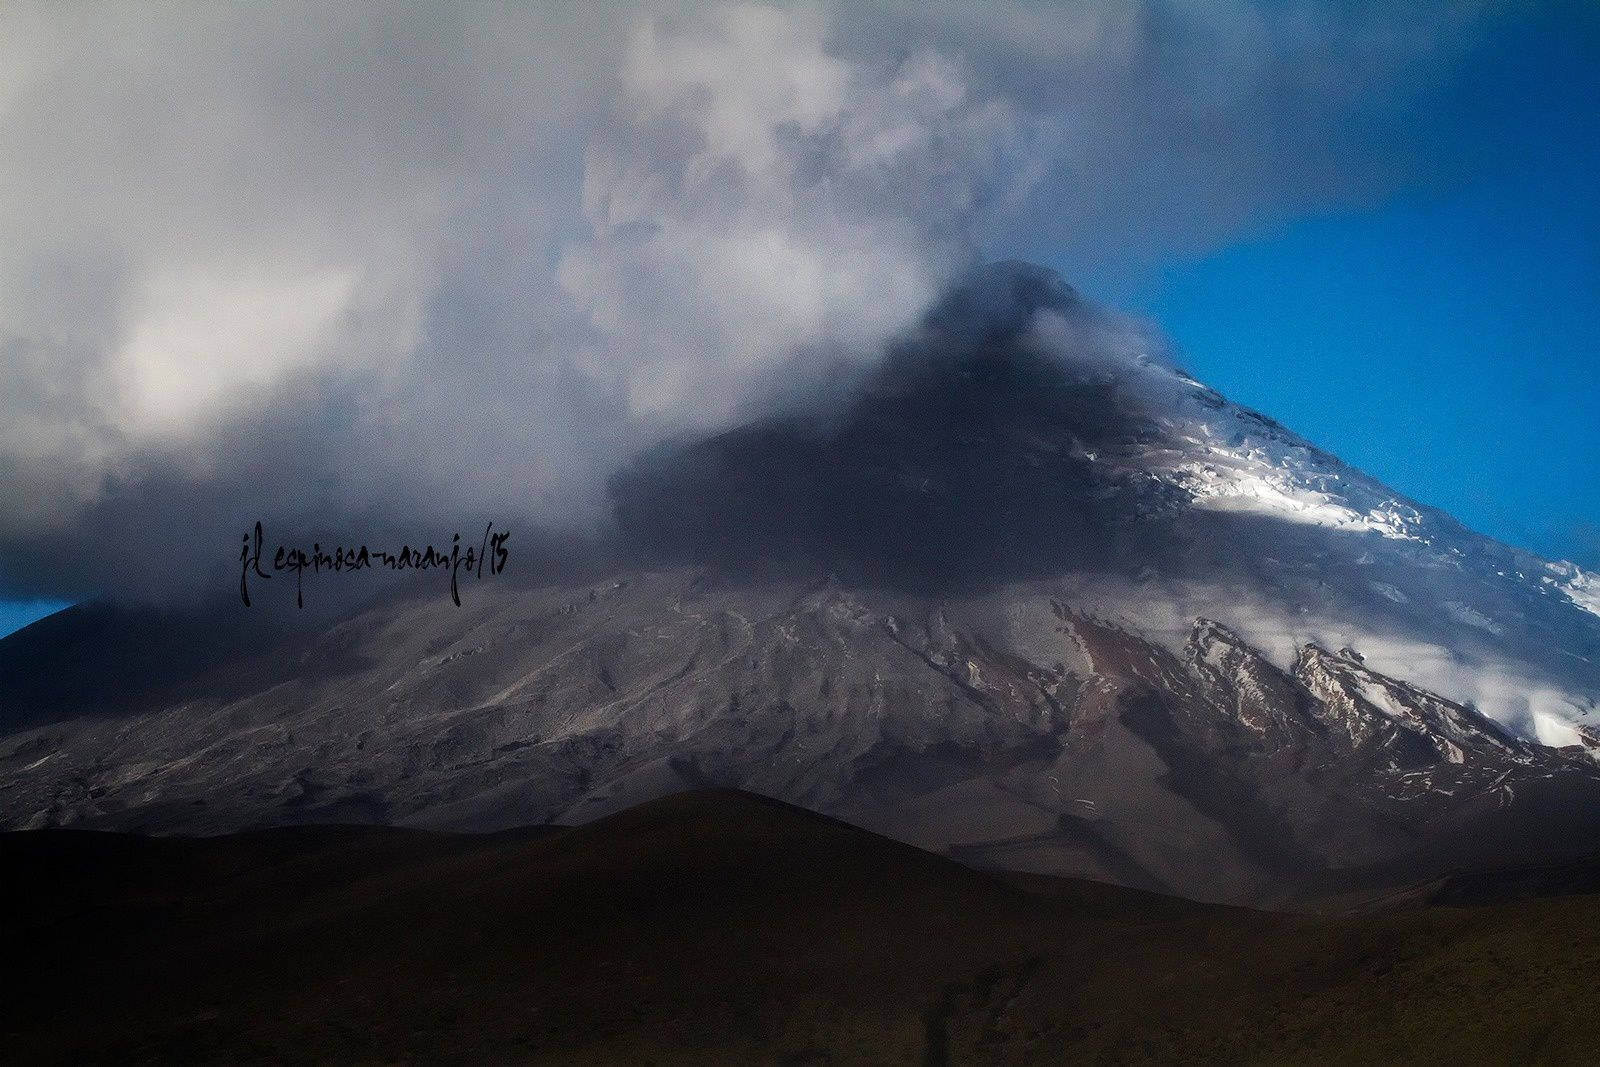 Cotopaxi - 08.18.2015 / 15h30 - take from Vaquería Ticatilín. SW of the volcano - photo Jose Luis Espinosa-Naranjo